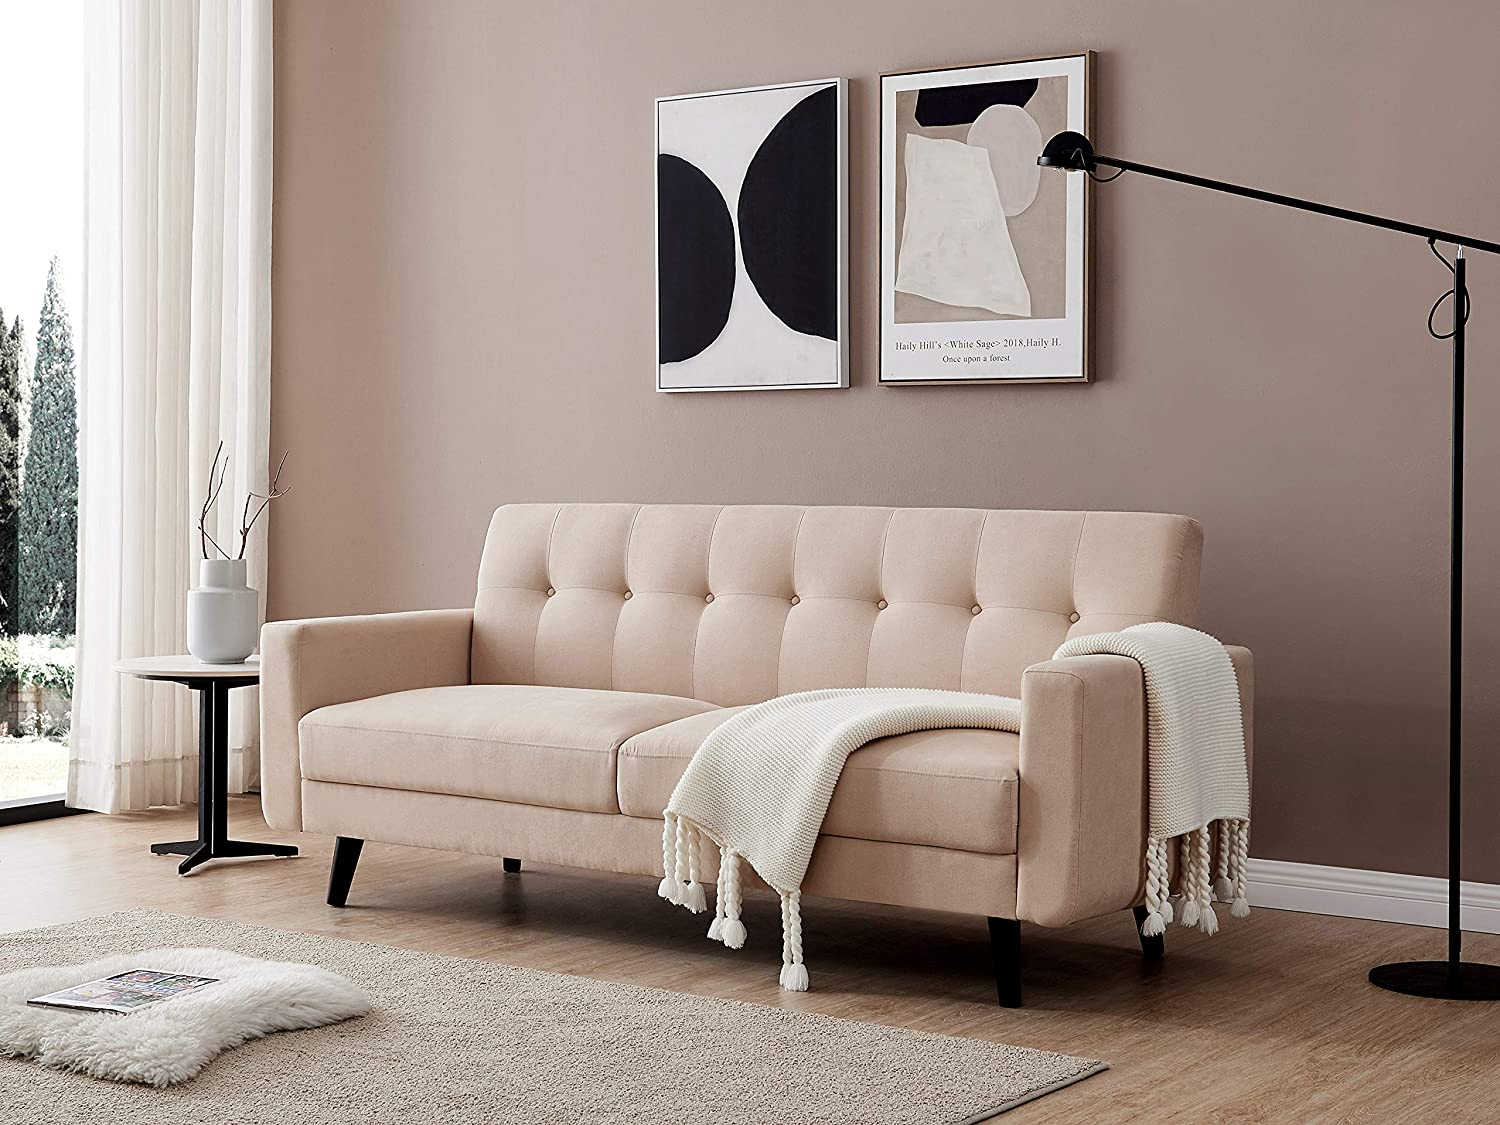 Fabric Sectional Couch Jacksonville Mall San Diego Mall Modern Sofa Furniture Hardwood with Sets